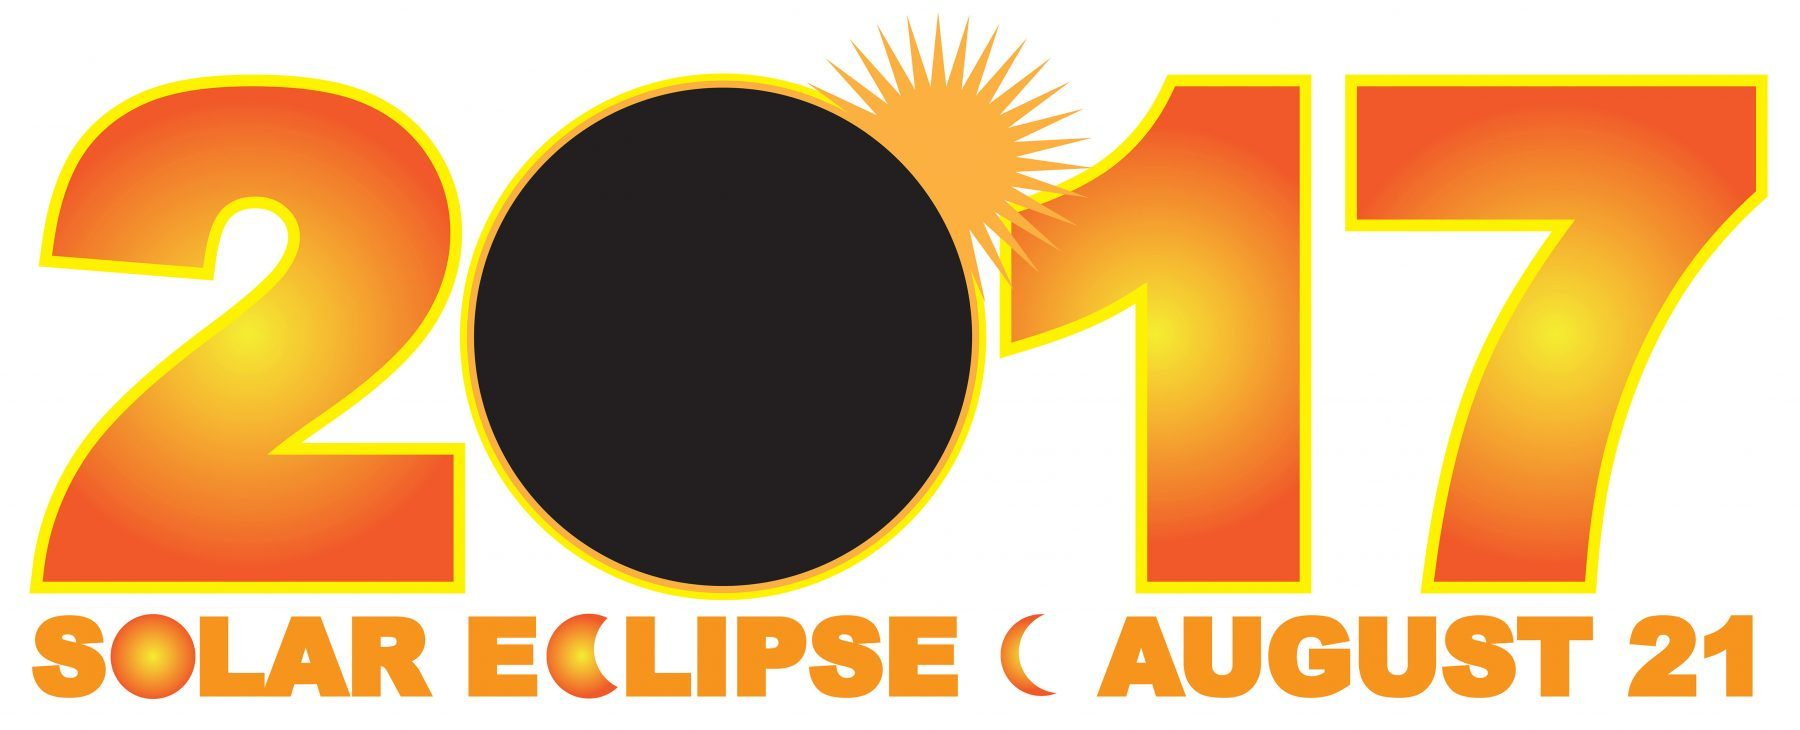 Station . 2017 clipart solar eclipse